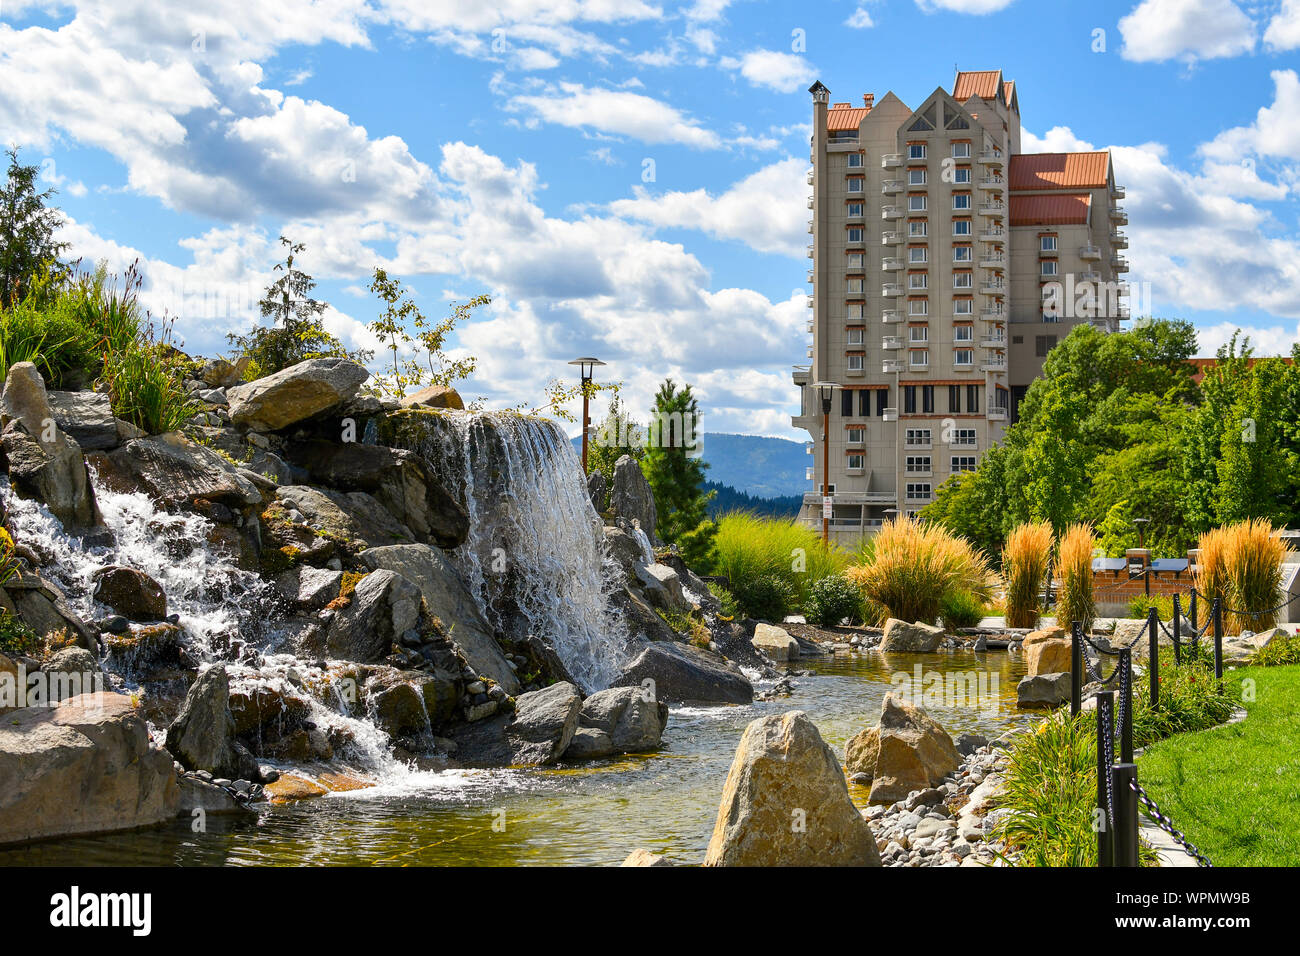 A large pond with waterfall inside the public McEuen Park near resorts and Tubbs Hill in the lakefront town of Coeur d'Alene, Idaho. Stock Photo